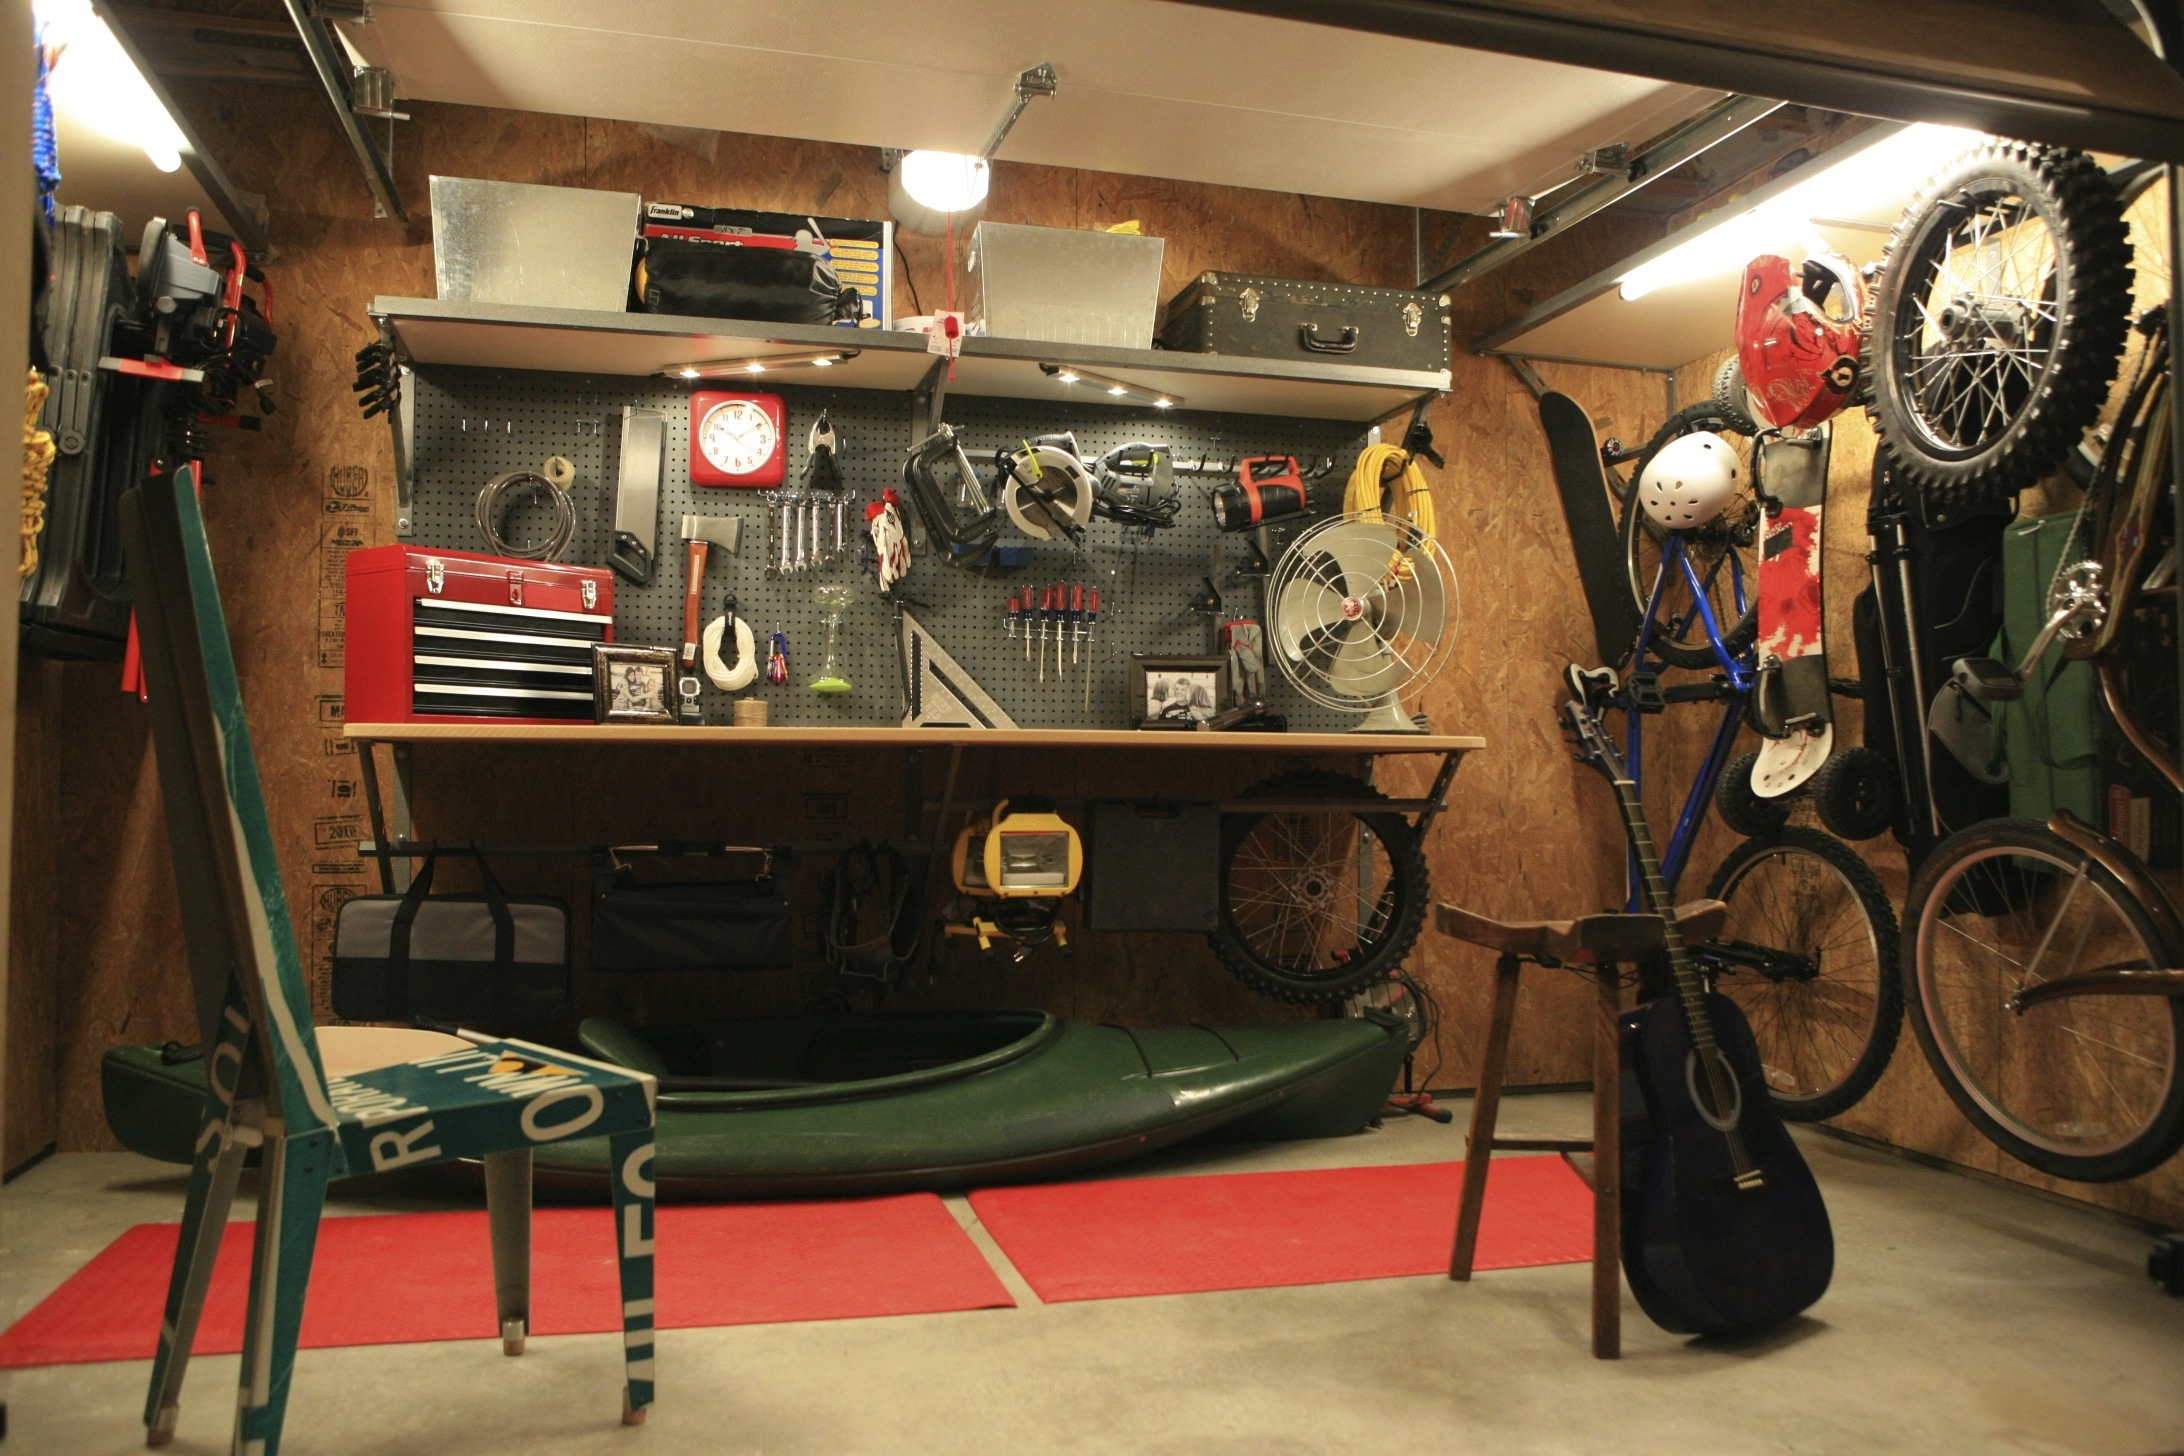 25 Garage Design Ideas For Your Home on Garage Decoration  id=42973